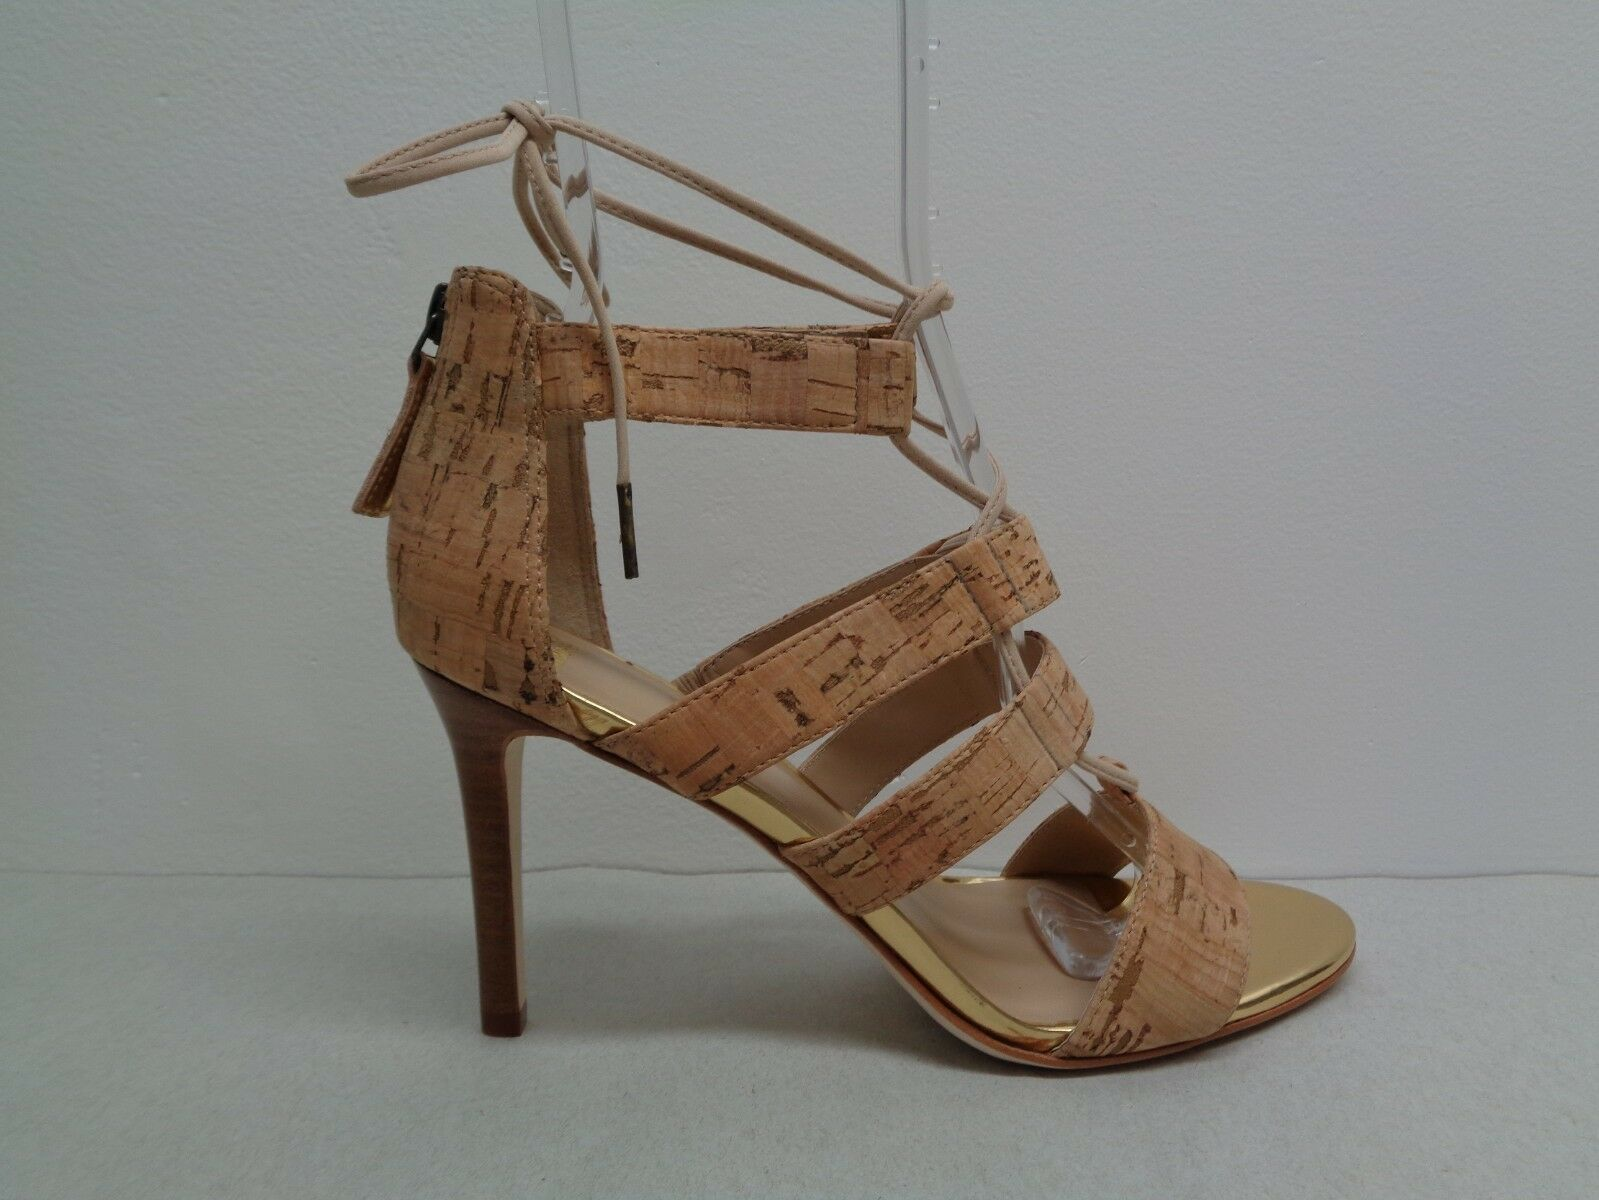 Johnston & Murphy Dimensione 8.5 M NATASHA Natural Cork Sandals Sandals Sandals New donna scarpe 707b91